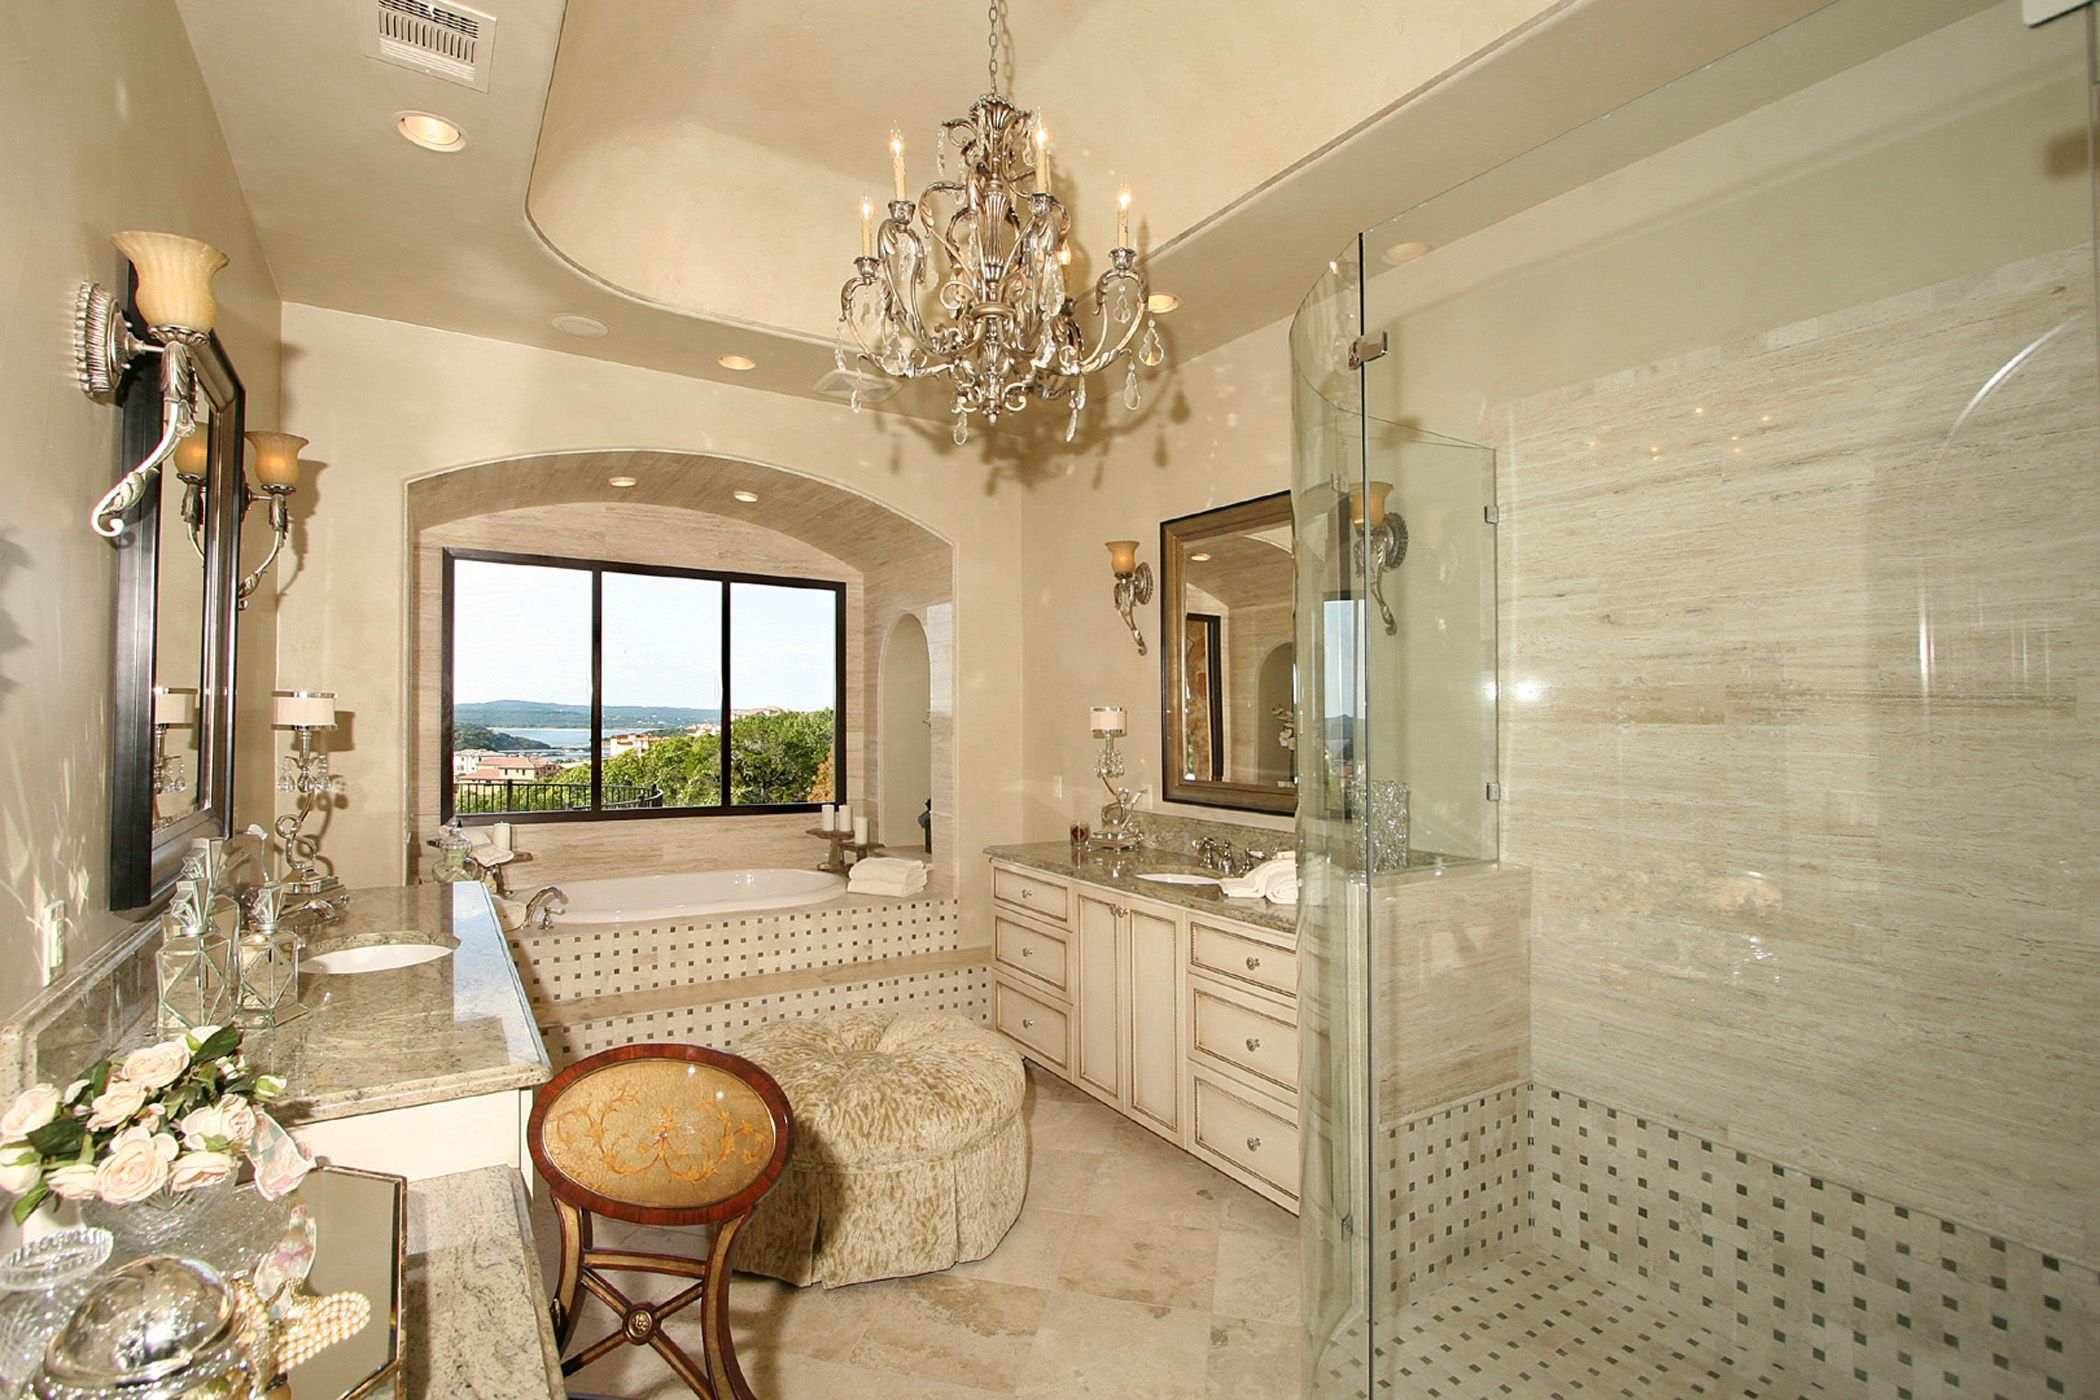 Rough hollow lakeway master bath elegance with view by Beautiful bathrooms and bedrooms magazine